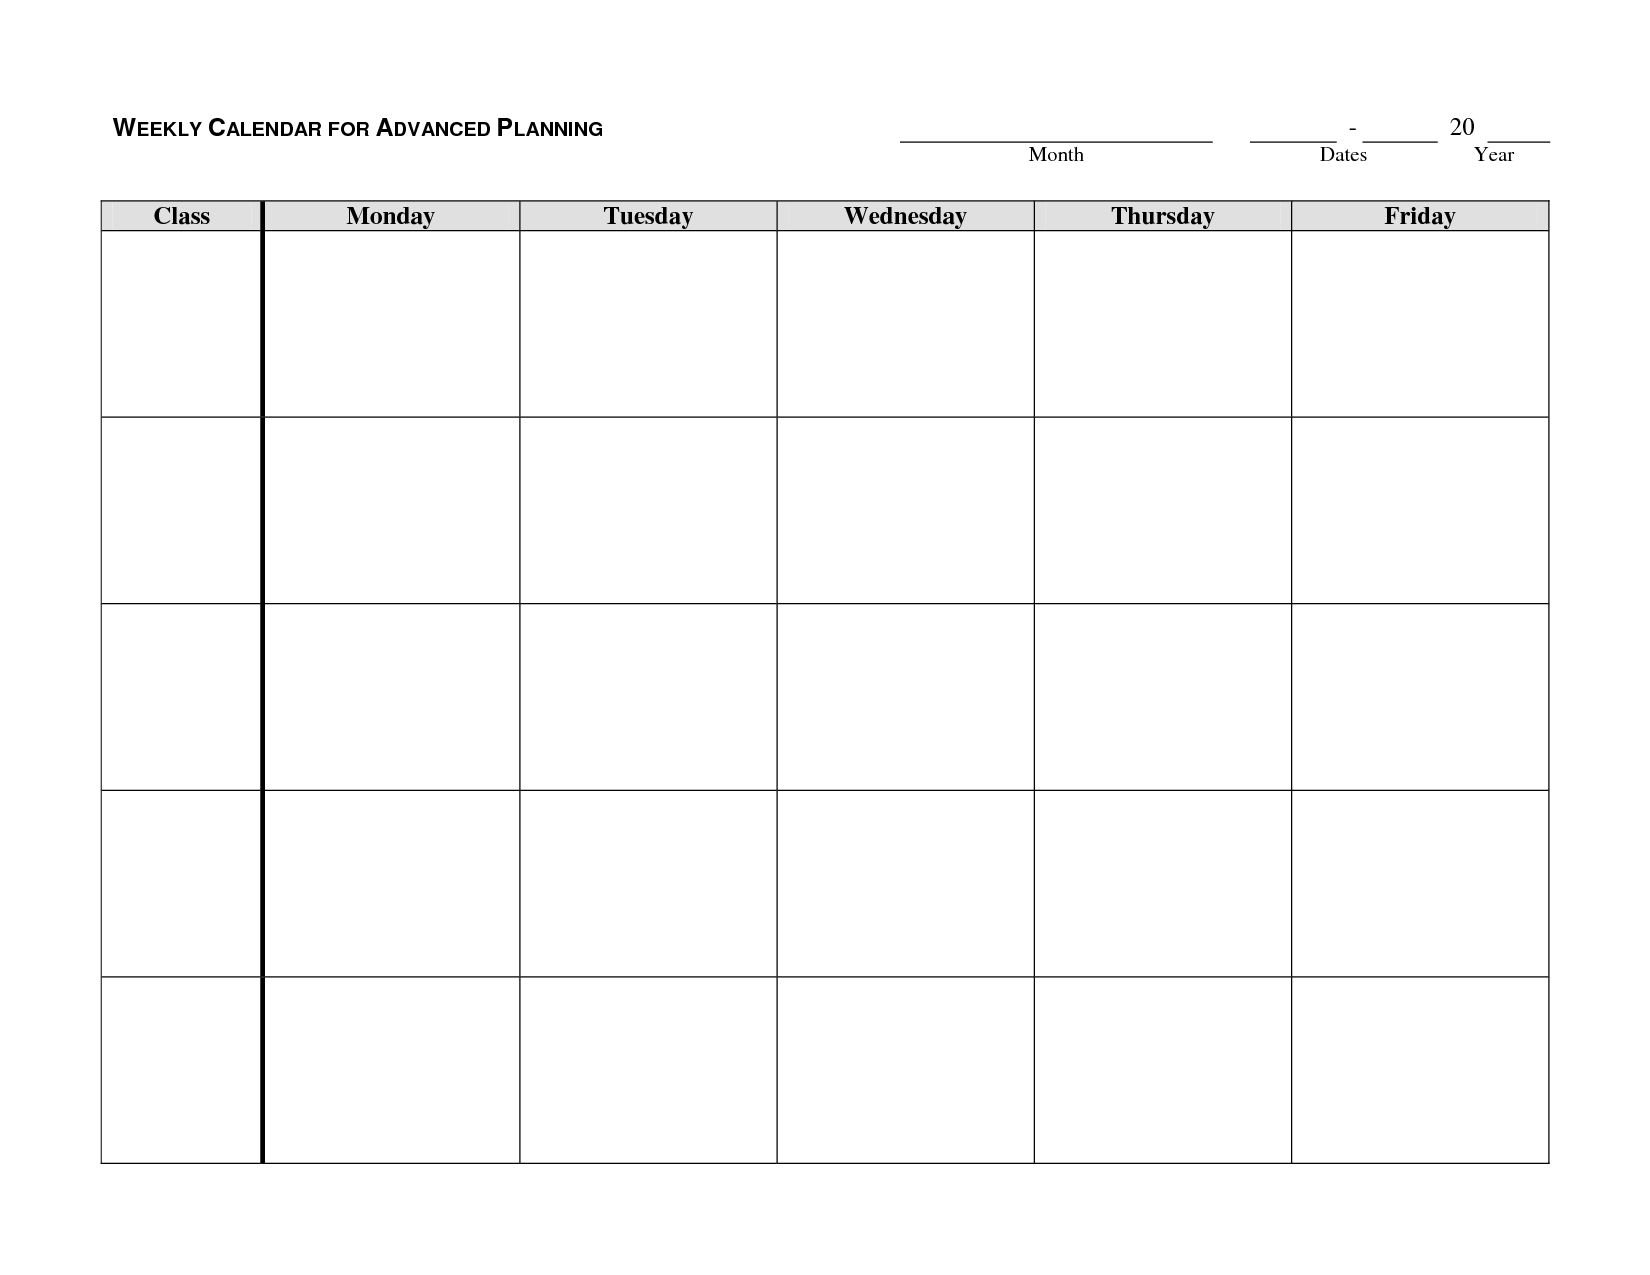 Monday Through Friday Blank Schedule Print Out In 2020 Monday Through Friday Week Calendar